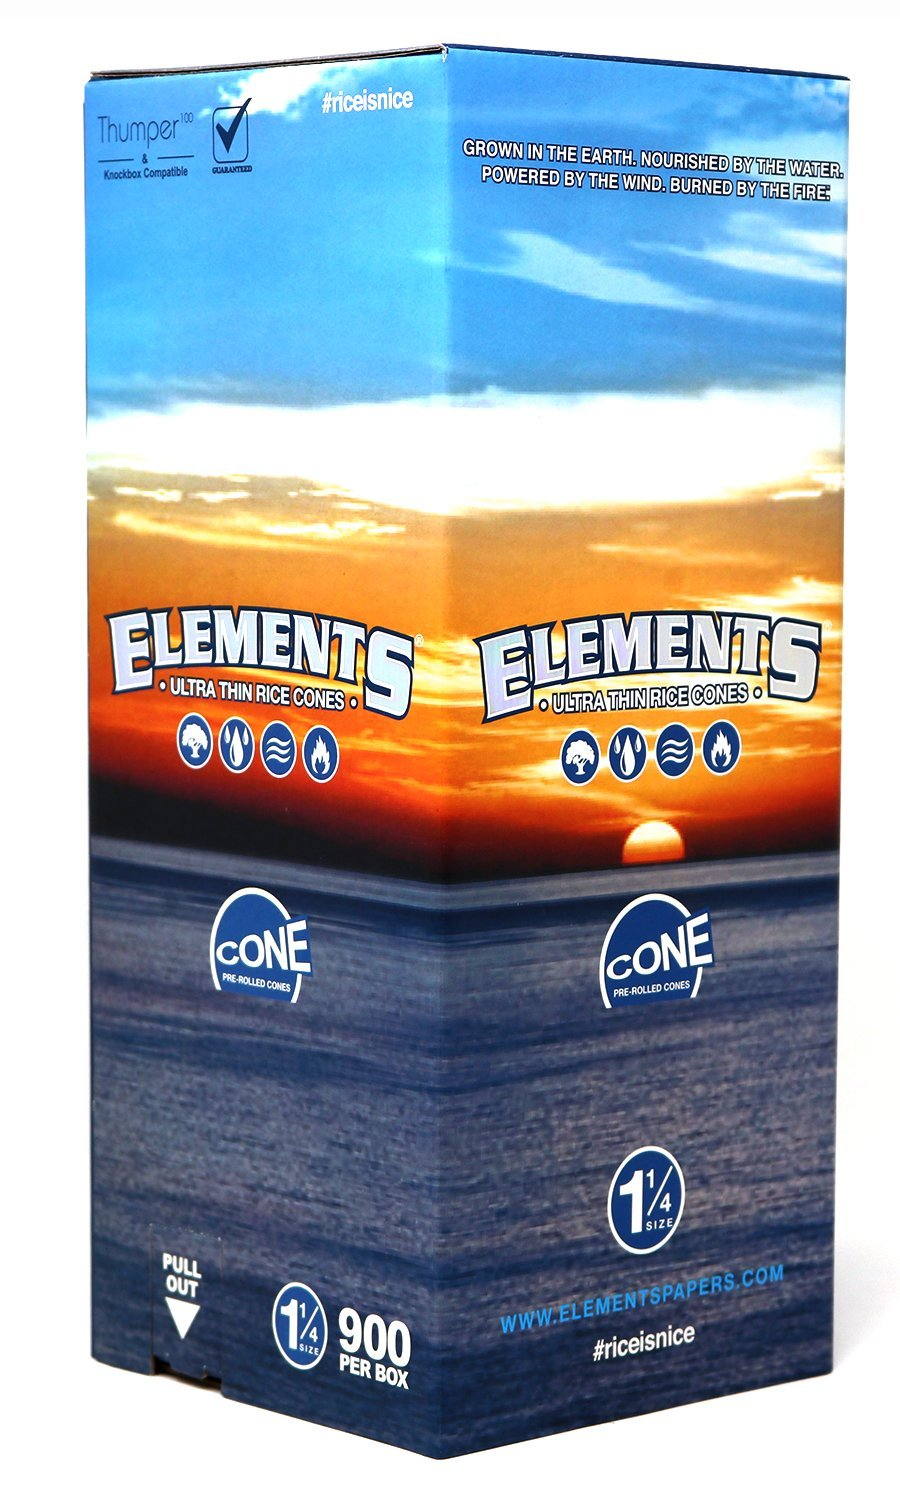 Elements 1 1/4 Rice Paper Pre-Rolled Cones (900 Pack) by Elements